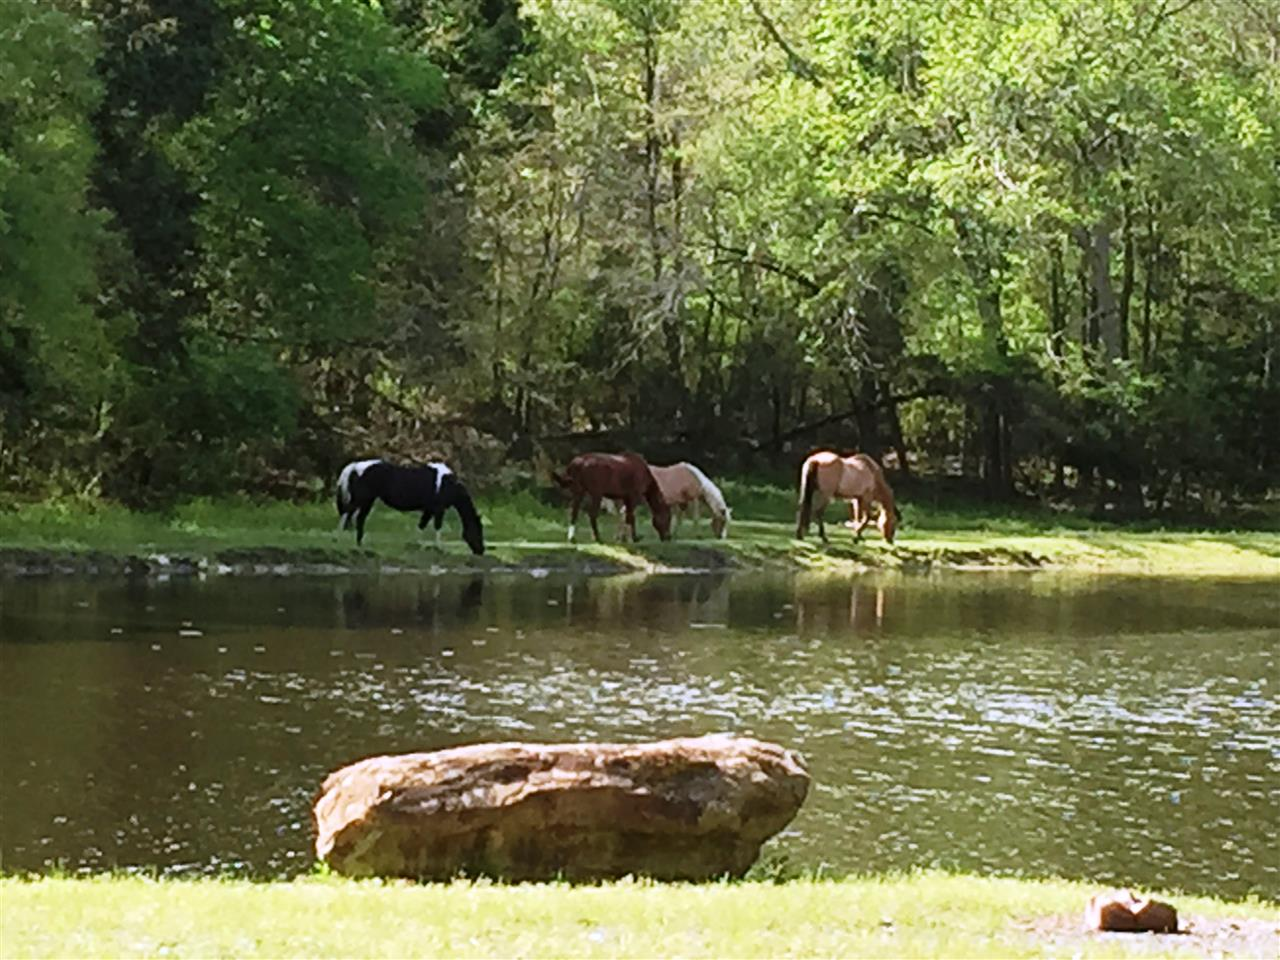 Horses grazing and quenching thirst at farm on the outskirts of Asheboro NC.